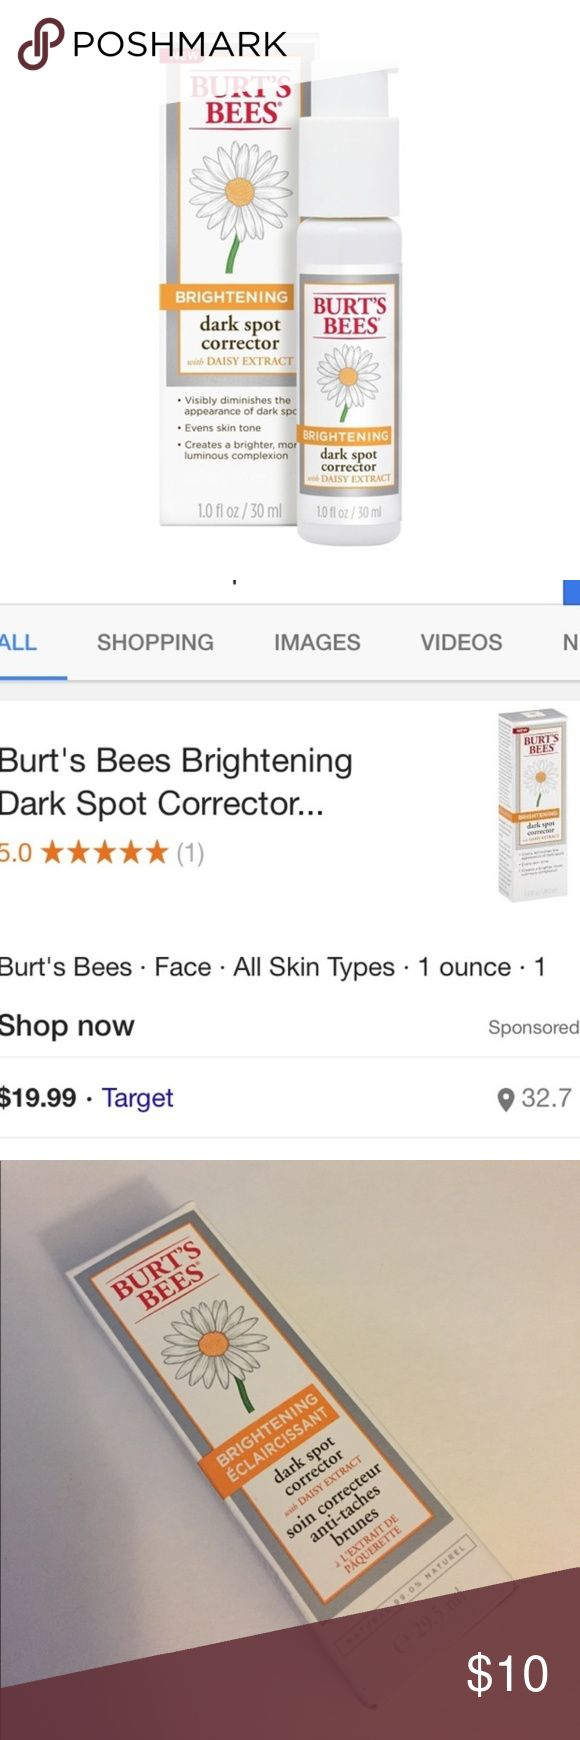 NEW! Burts Bees Dark Spot Corrector 💚BUNDLE ITEM NEW in box ~ Full size 1.0 fl oz ~ Burt's Bees BRIGHTENING Dark Spot Corrector with daisy extract ~ Visibly diminishes appearance of dark spots; evens skin tone; and creates a brighter, more luminous complexion  *BUNDLE ITEMS💚 : Items marked with a green heart (like this one) are priced especially low & therefore MUST be bundled w/ at least 1 other item in my closet! Select anything as long as item(s) in bundle total at least $15. All…